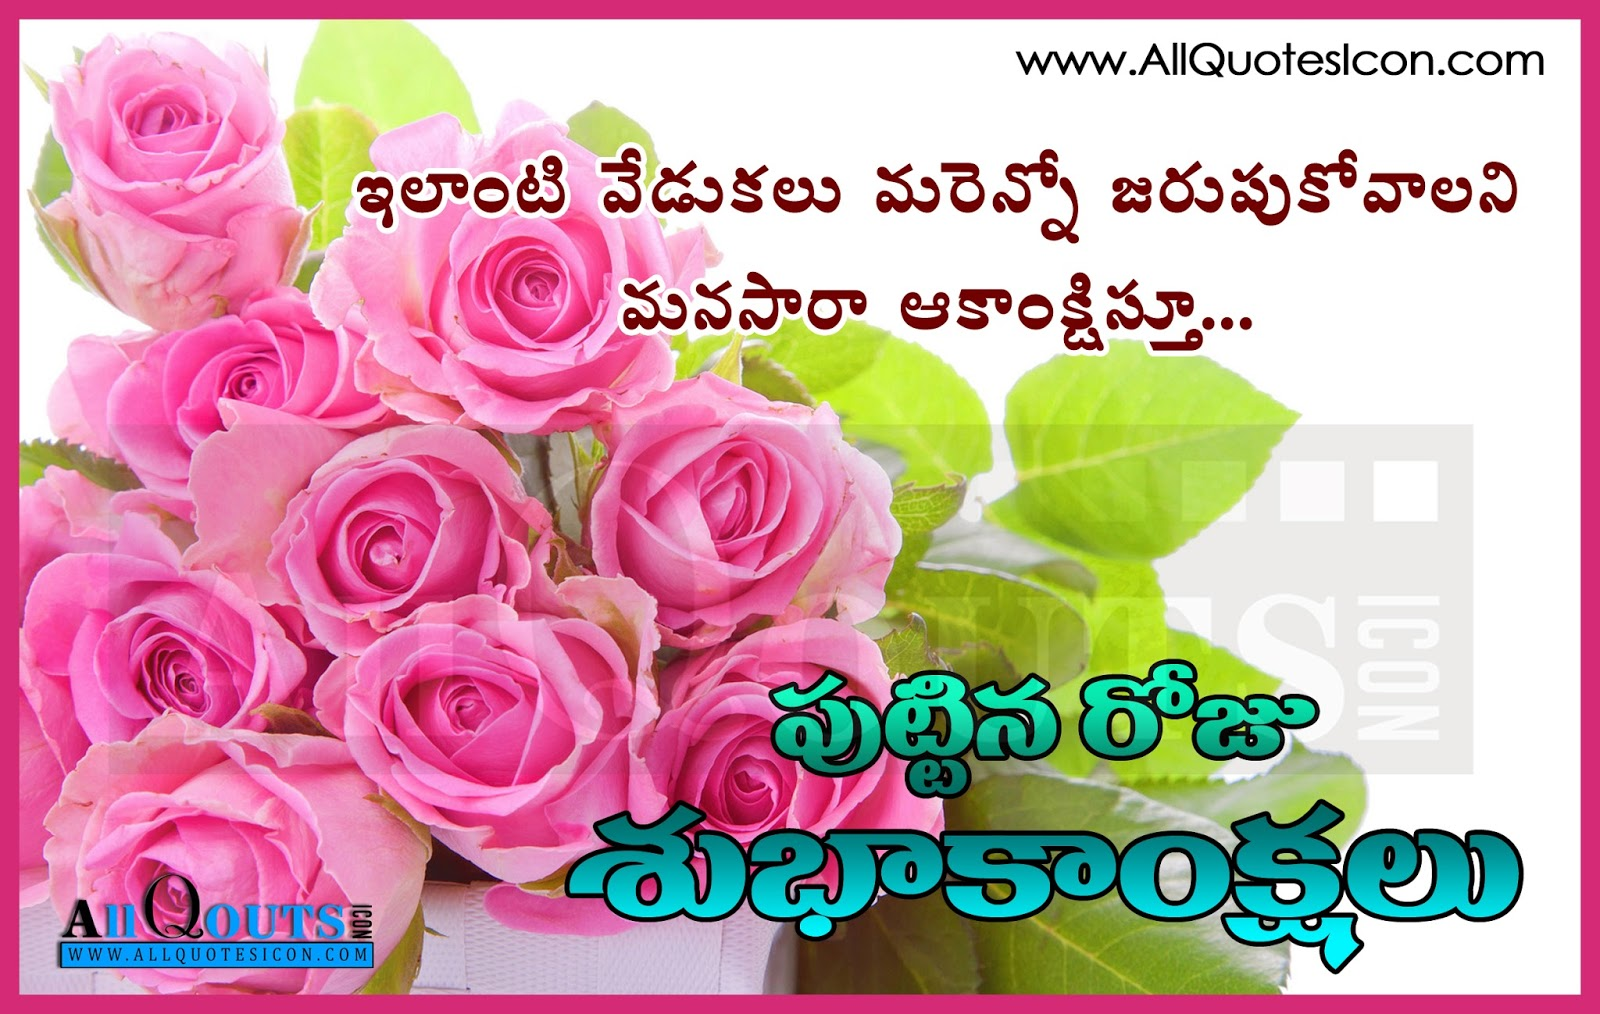 Many happy returns of the day wishes telugu quotes hd wallpapers happy birthday telugu quotes images pictures wallpapers photos m4hsunfo